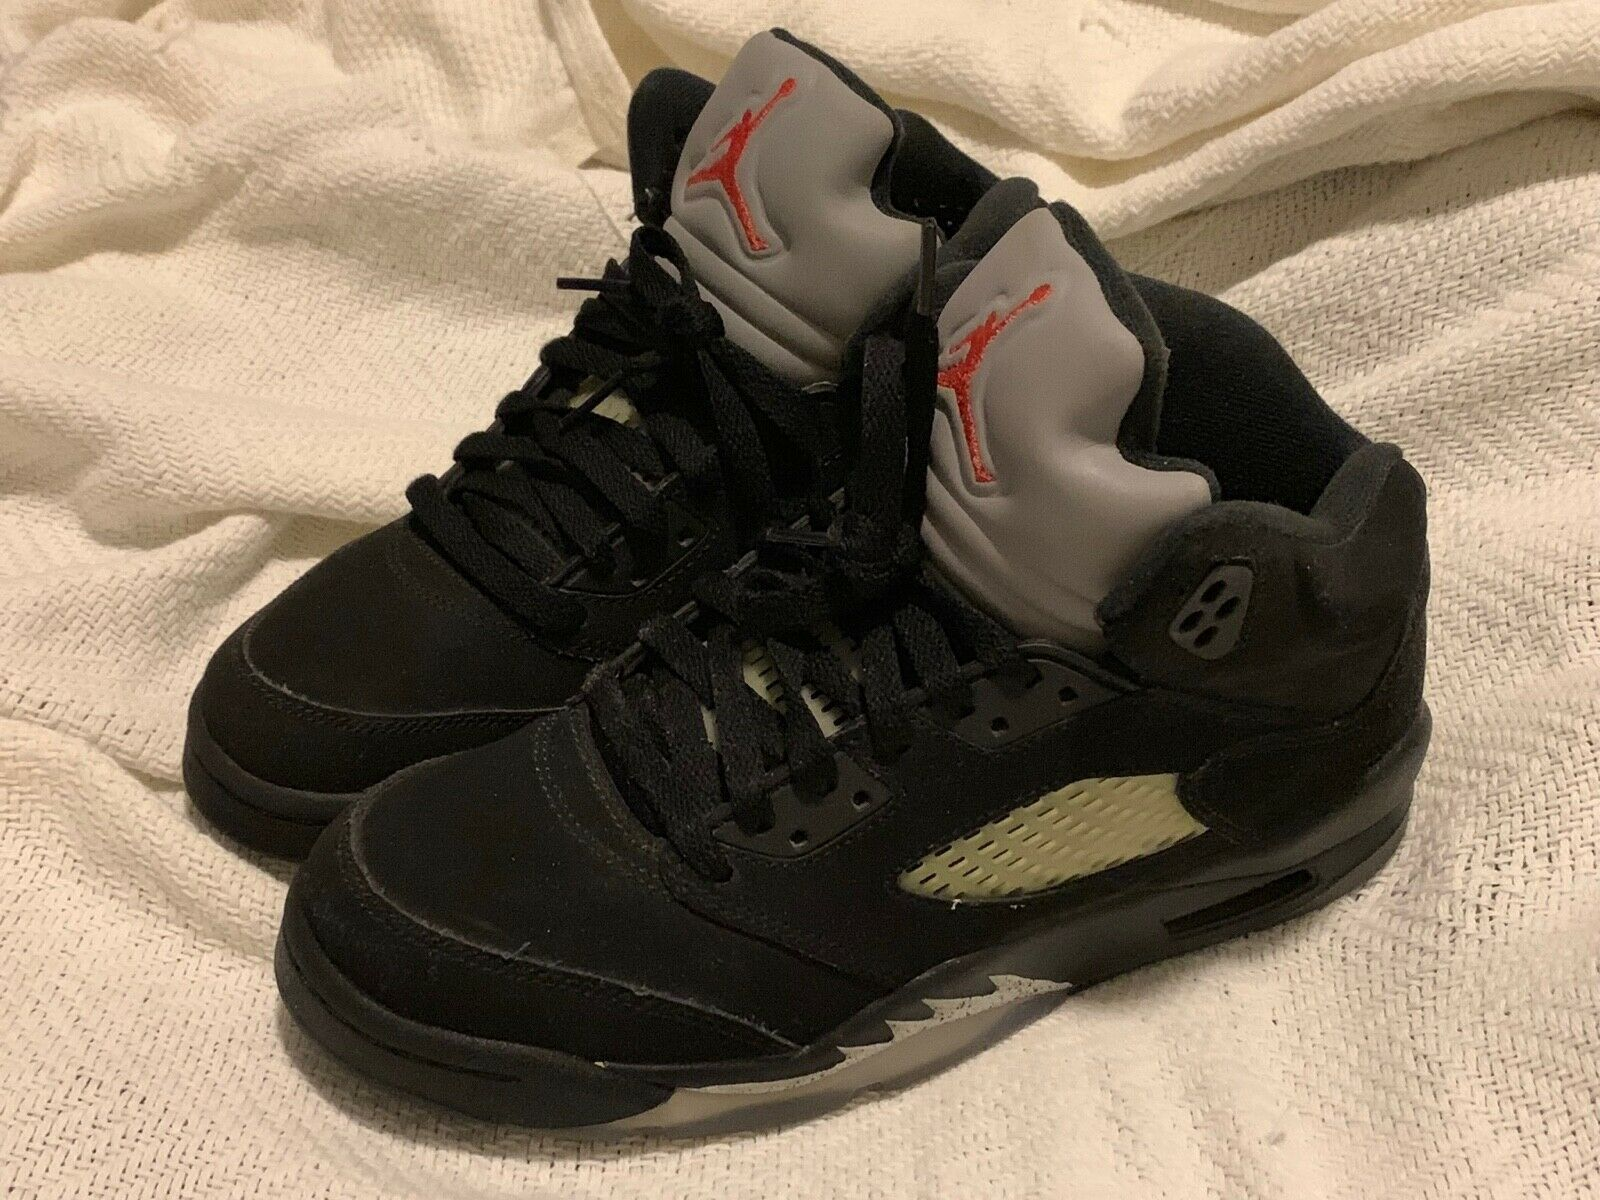 Nike Air Jordan Retro 5 Men's shoes, Size 6.5 US, Black   Metallic Silver